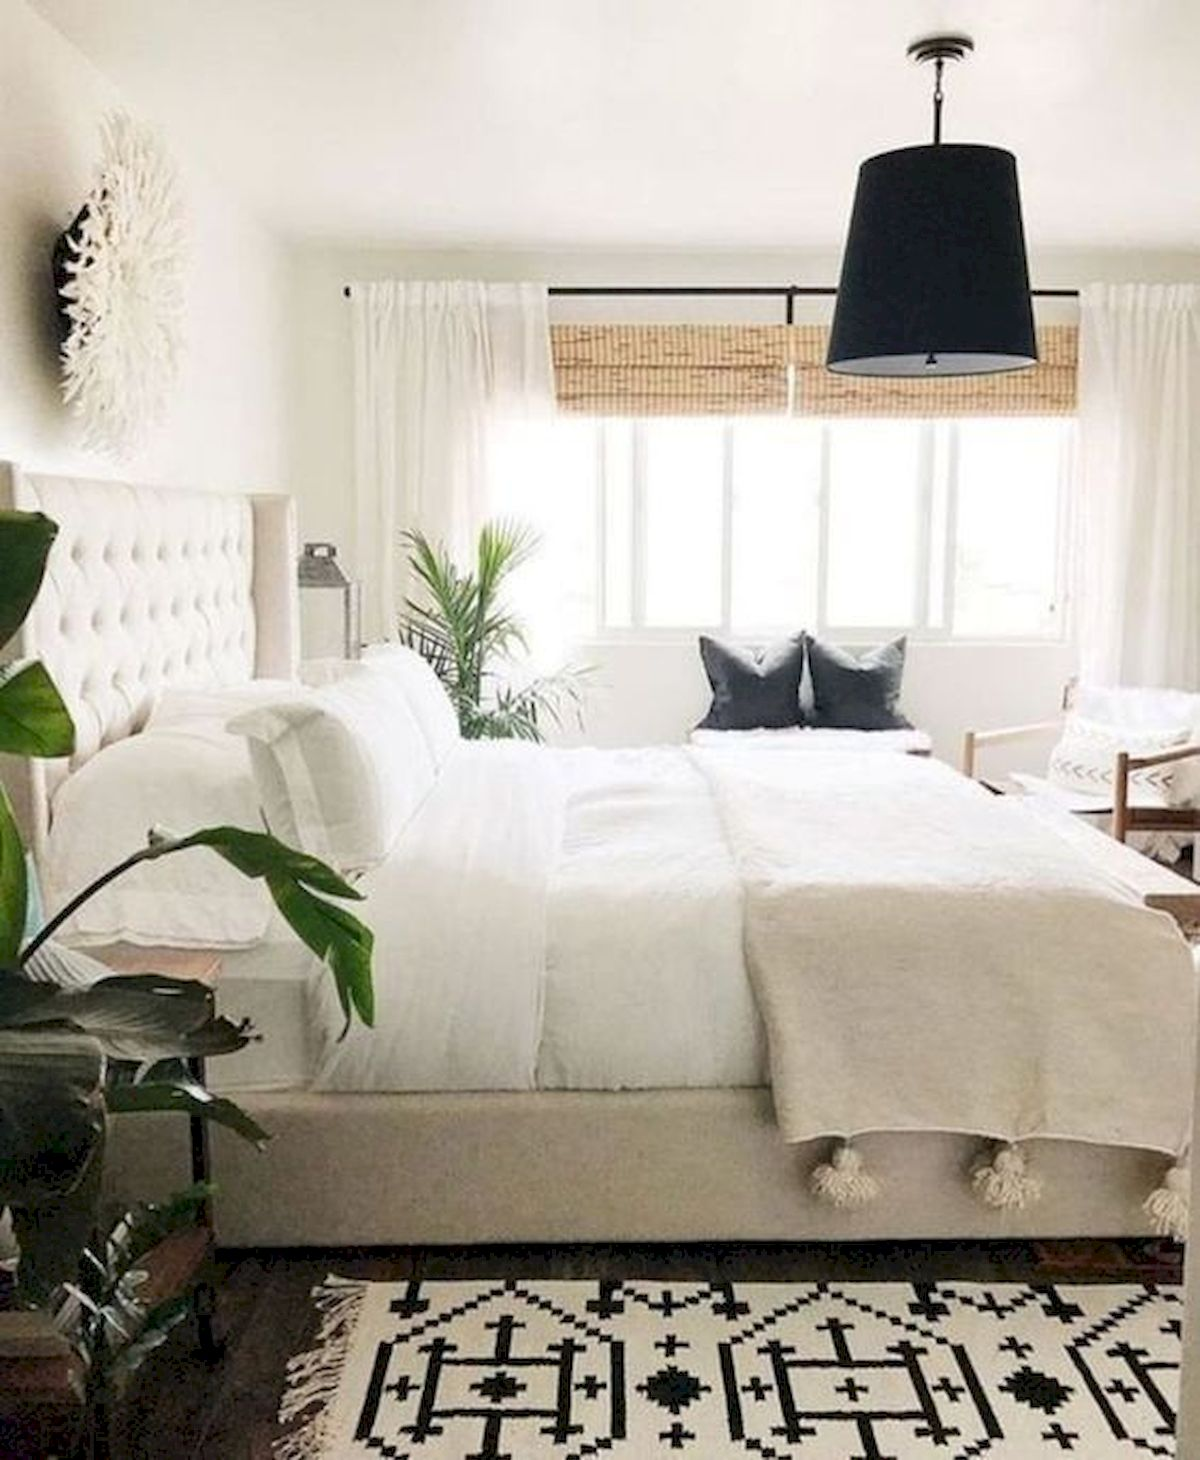 40 Incredible Modern Bedroom Design Ideas That Will Be Relax Place (33)